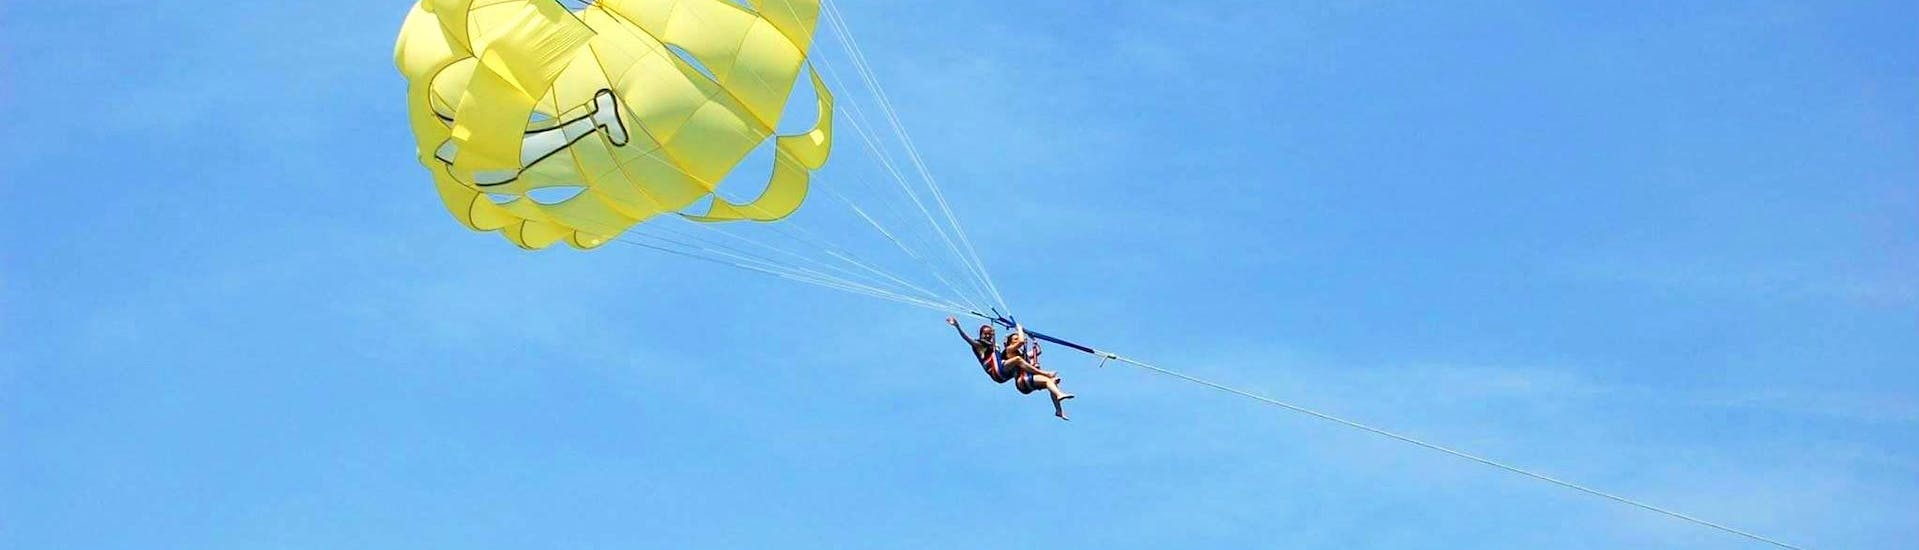 Friends are having fun while Parasailing in Villeneuve-Loubet with Plage des Marines.